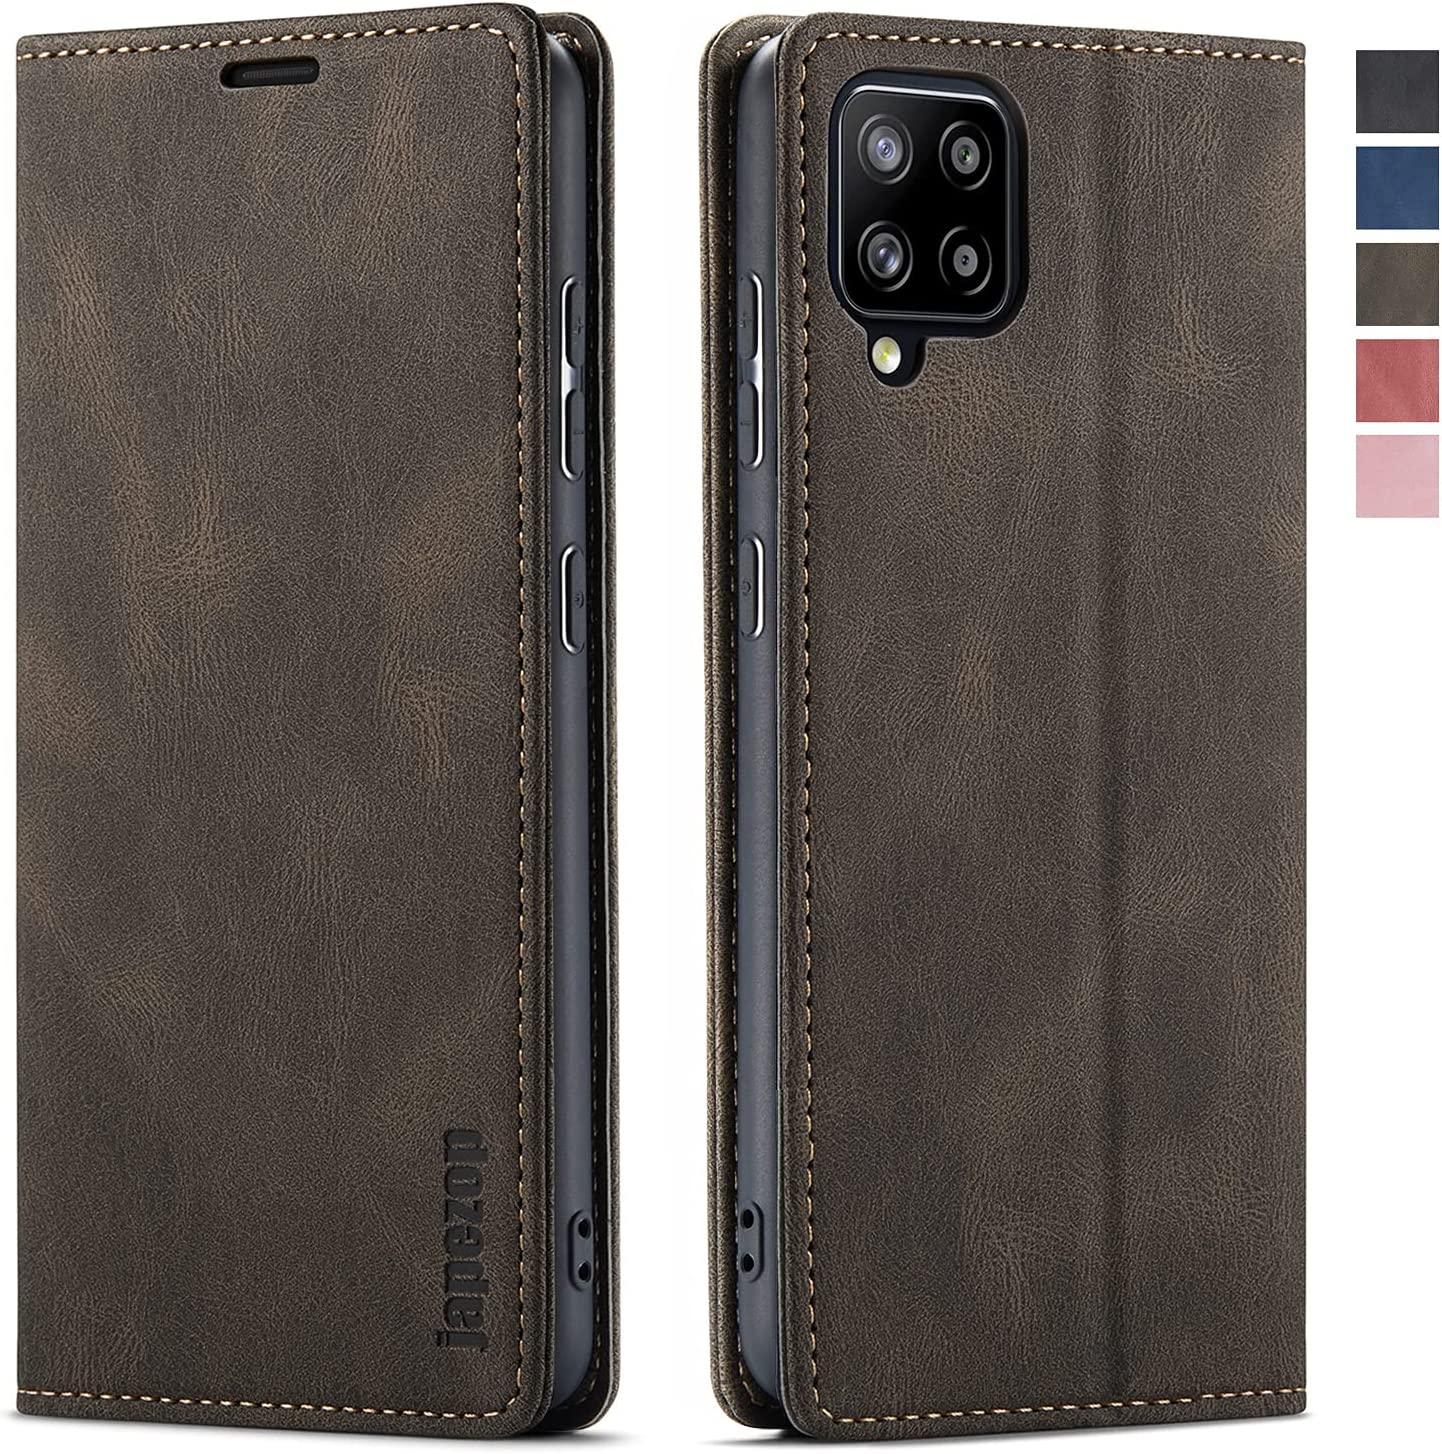 Samsung Galaxy A42 5G Case,Samsung Galaxy A42 5G Case Wallet with [RFID Blocking] Card Holder Kickstand Magnetic,Leather Flip Case for Samsung Galaxy A42 5G 6.6 inch (Coffee)